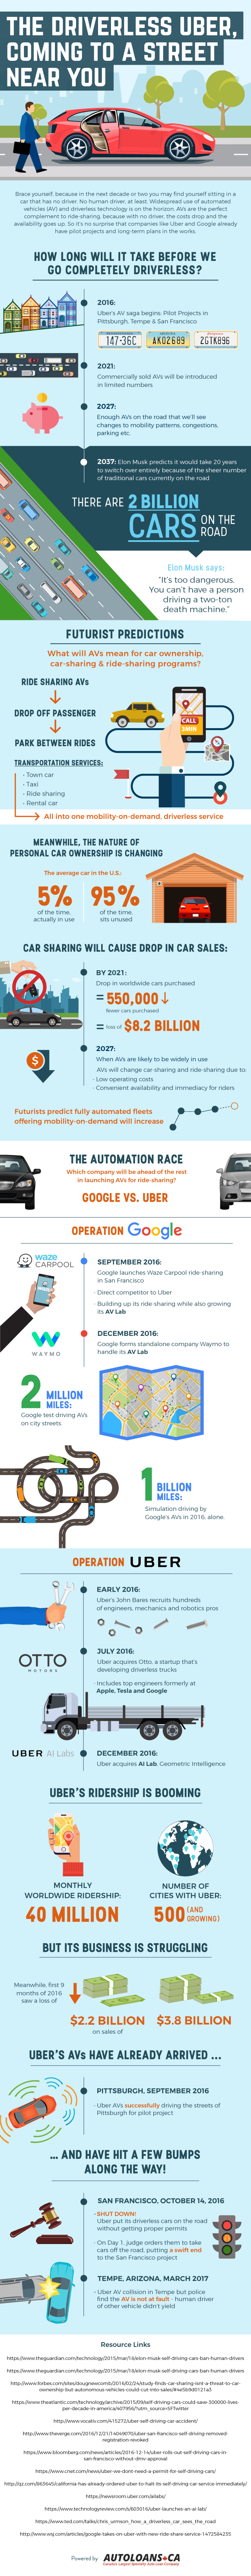 Automated cars and Uber (1)